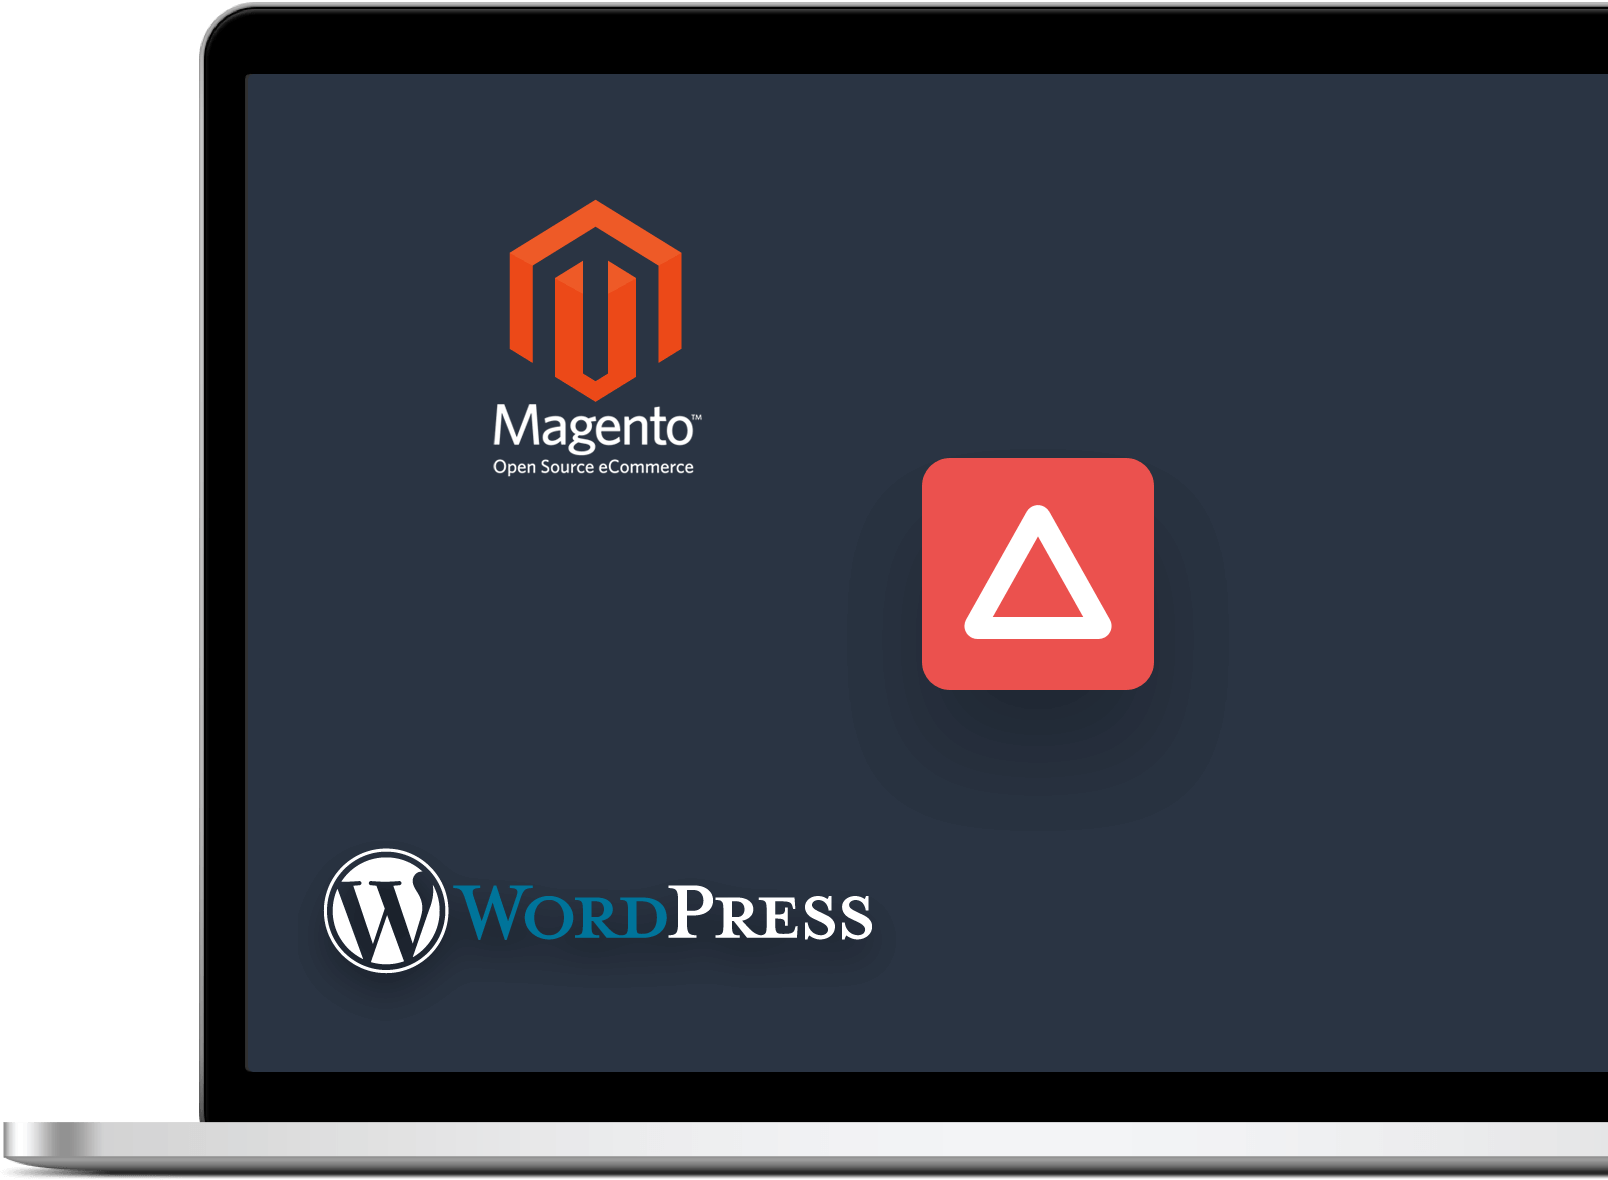 Ordinateur portable affichant les logos de Magento et WordPress